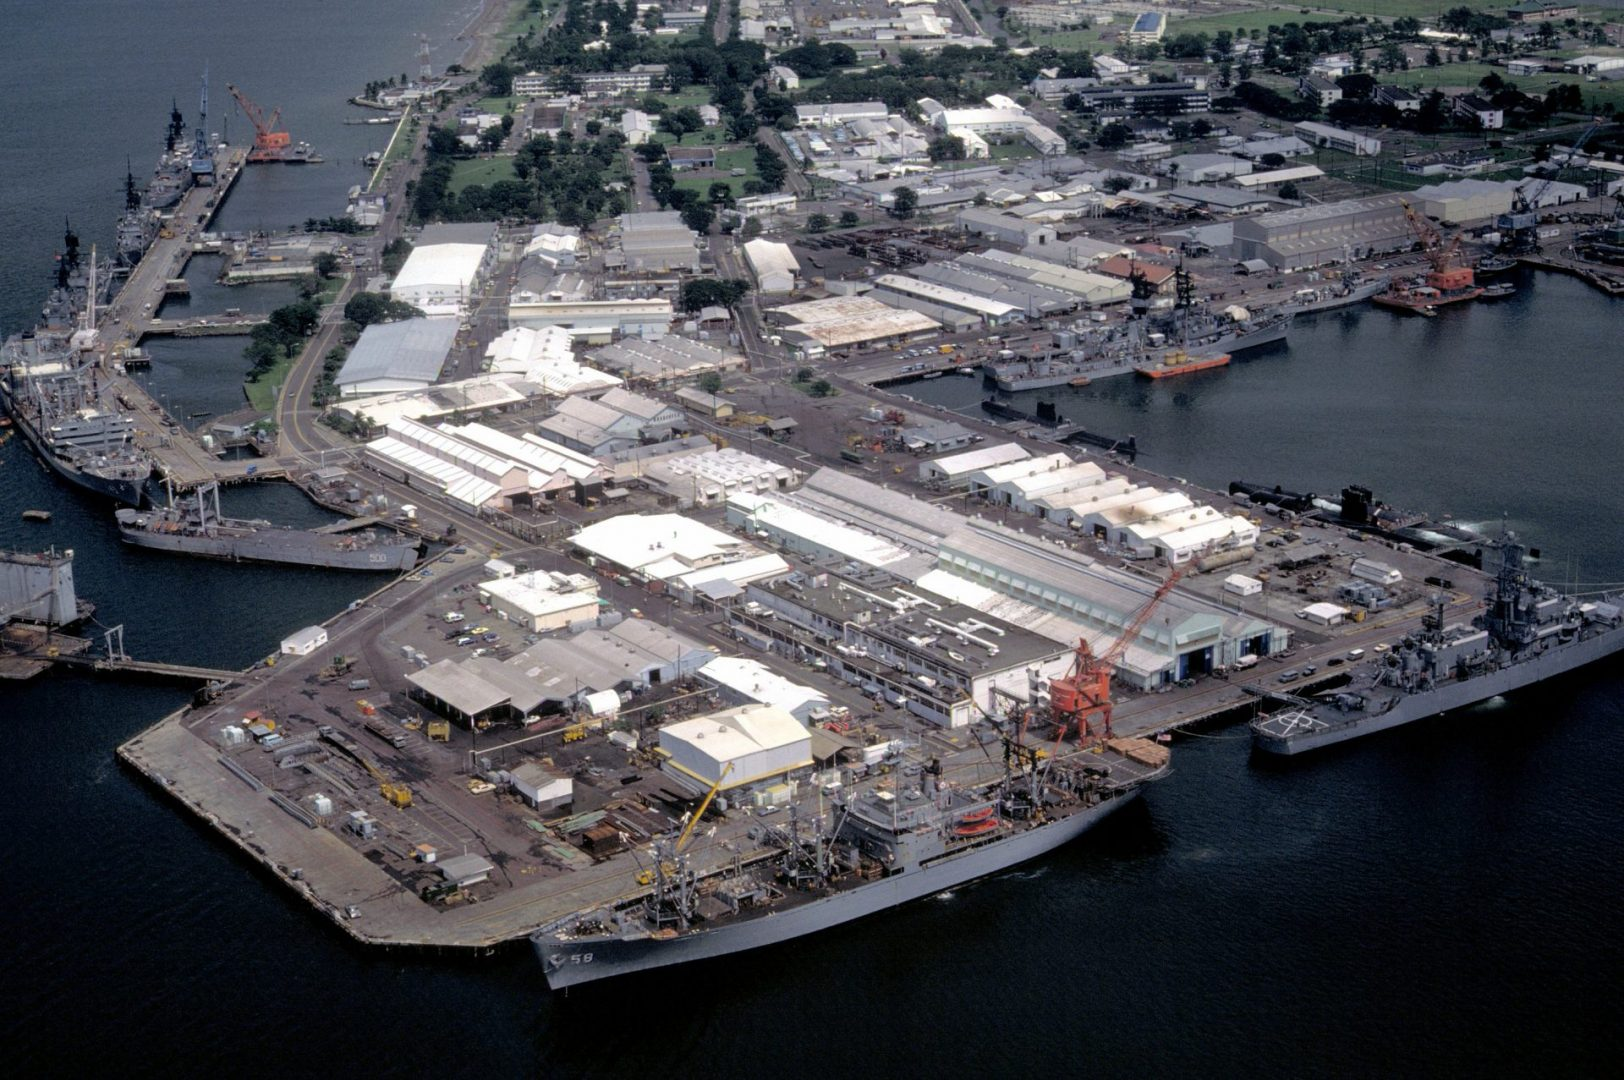 A view of the pier area with docked ships including the auxiliary stores ship USNS RIGEL (T-AF-58) and the nuclear-powered guided missile cruiser USS BAINBRIDGE (CGN-25) in the foreground. At left are the oiler USNS HASSAYAMPA (T-AO-145), the guided missile cruiser USS STERETT (CG-31), the guided missile destroyer USS HENRY B. WILSON (DDG-7) and the guided missile cruiser USS WILLIAM H. STANDLEY (CG-32).